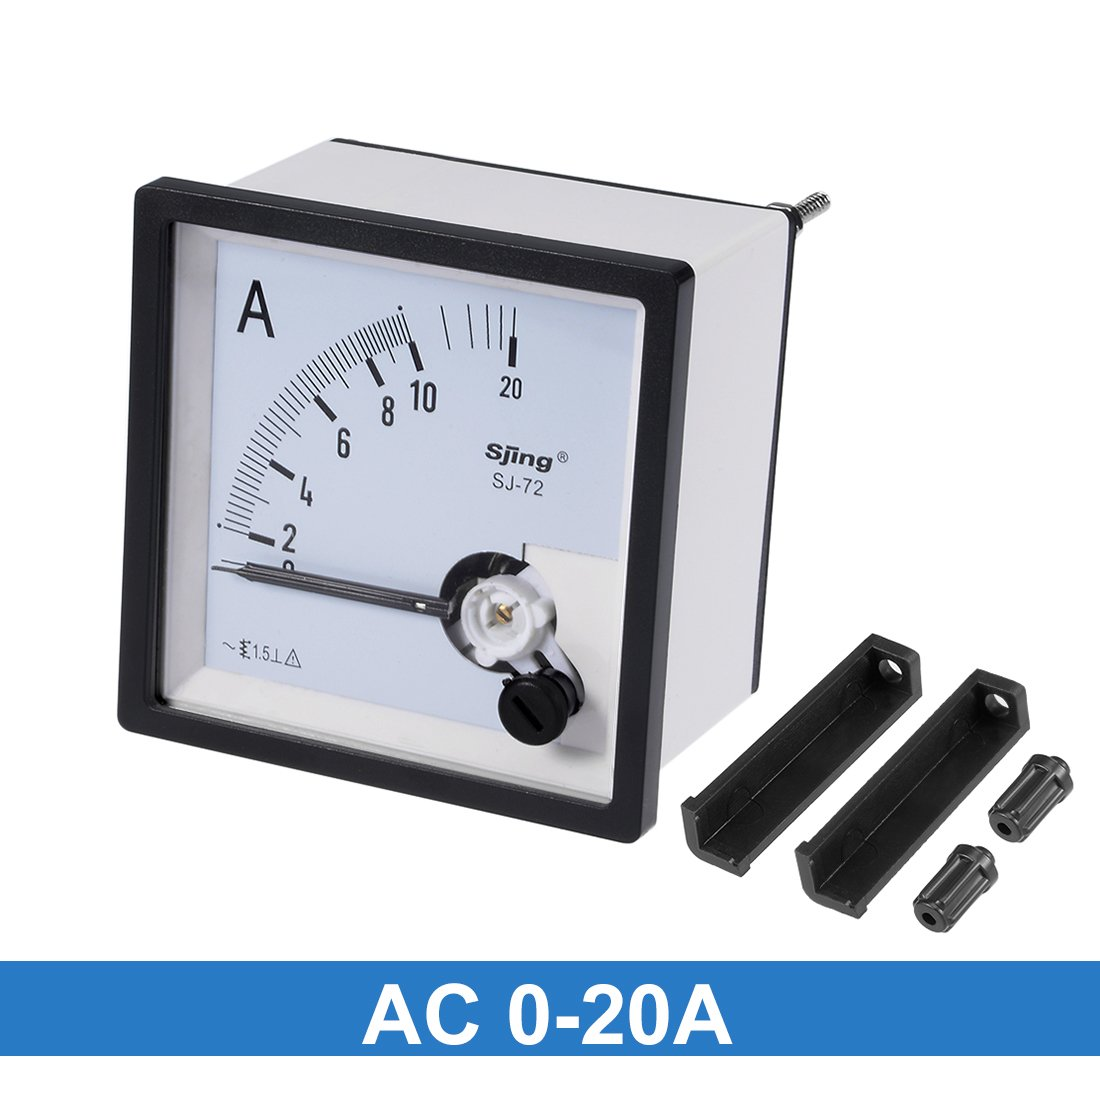 uxcell AC 0-50A Analog Panel Ammeter Gauge Ampere Current Meter SQ-72 1.5 Error Margin